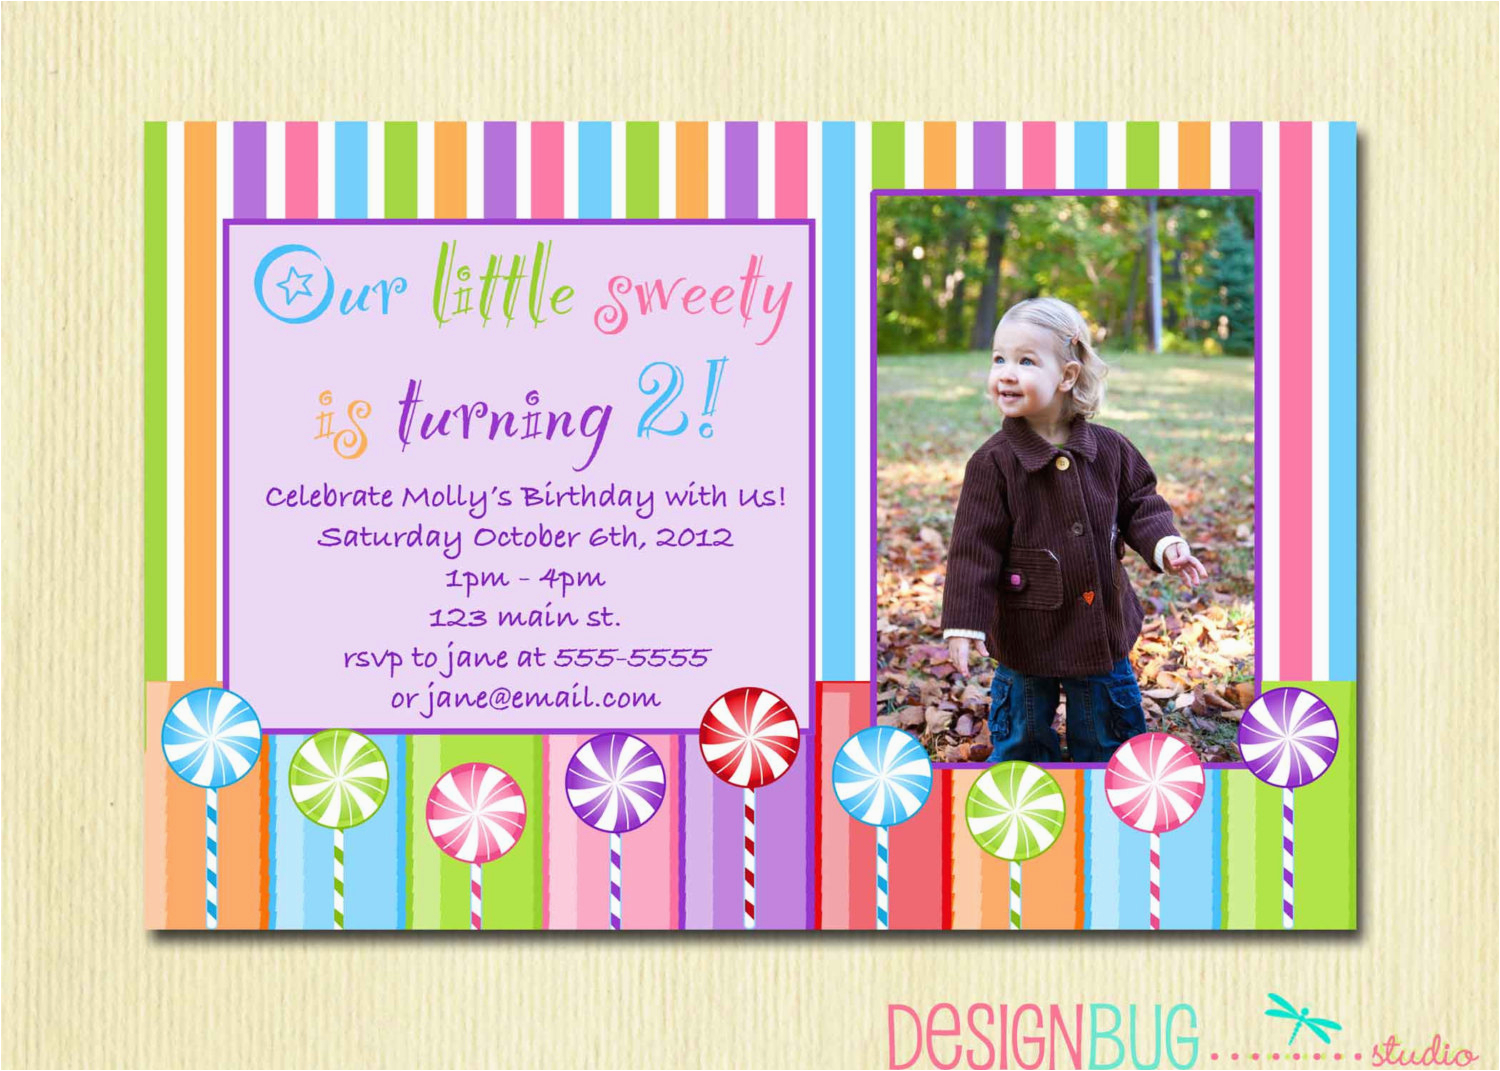 5 Year Old Birthday Party Invitation Wording 4 Invitations Best Ideas